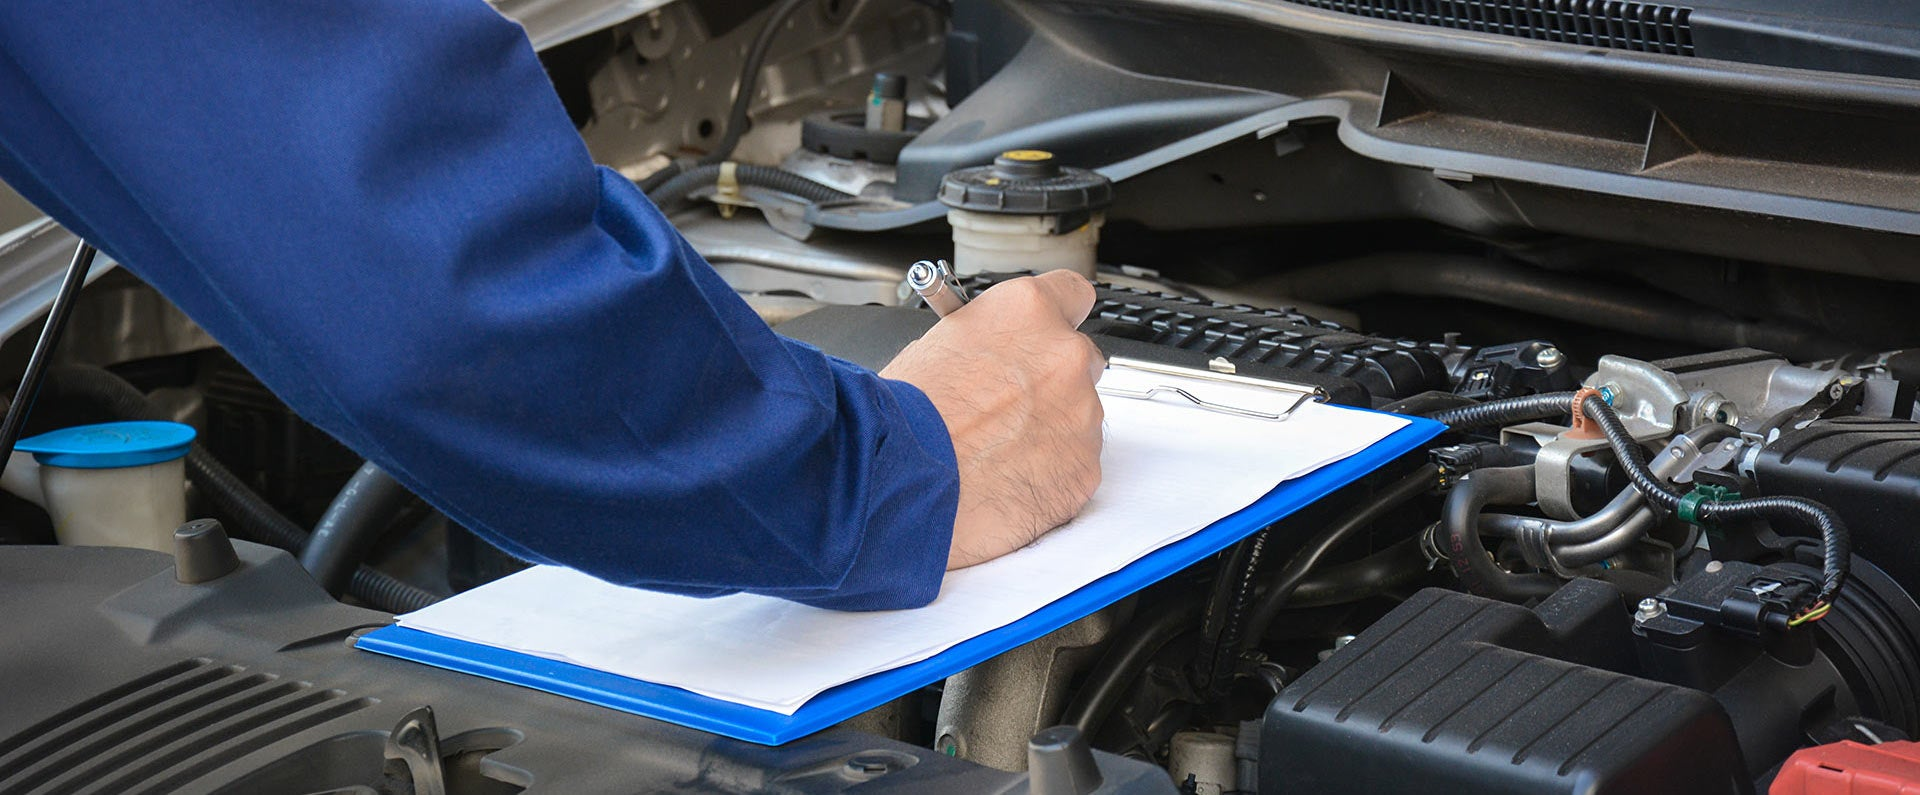 Fuel Induction Service >> Fuel Induction Service Steve Rogers Ford Specials